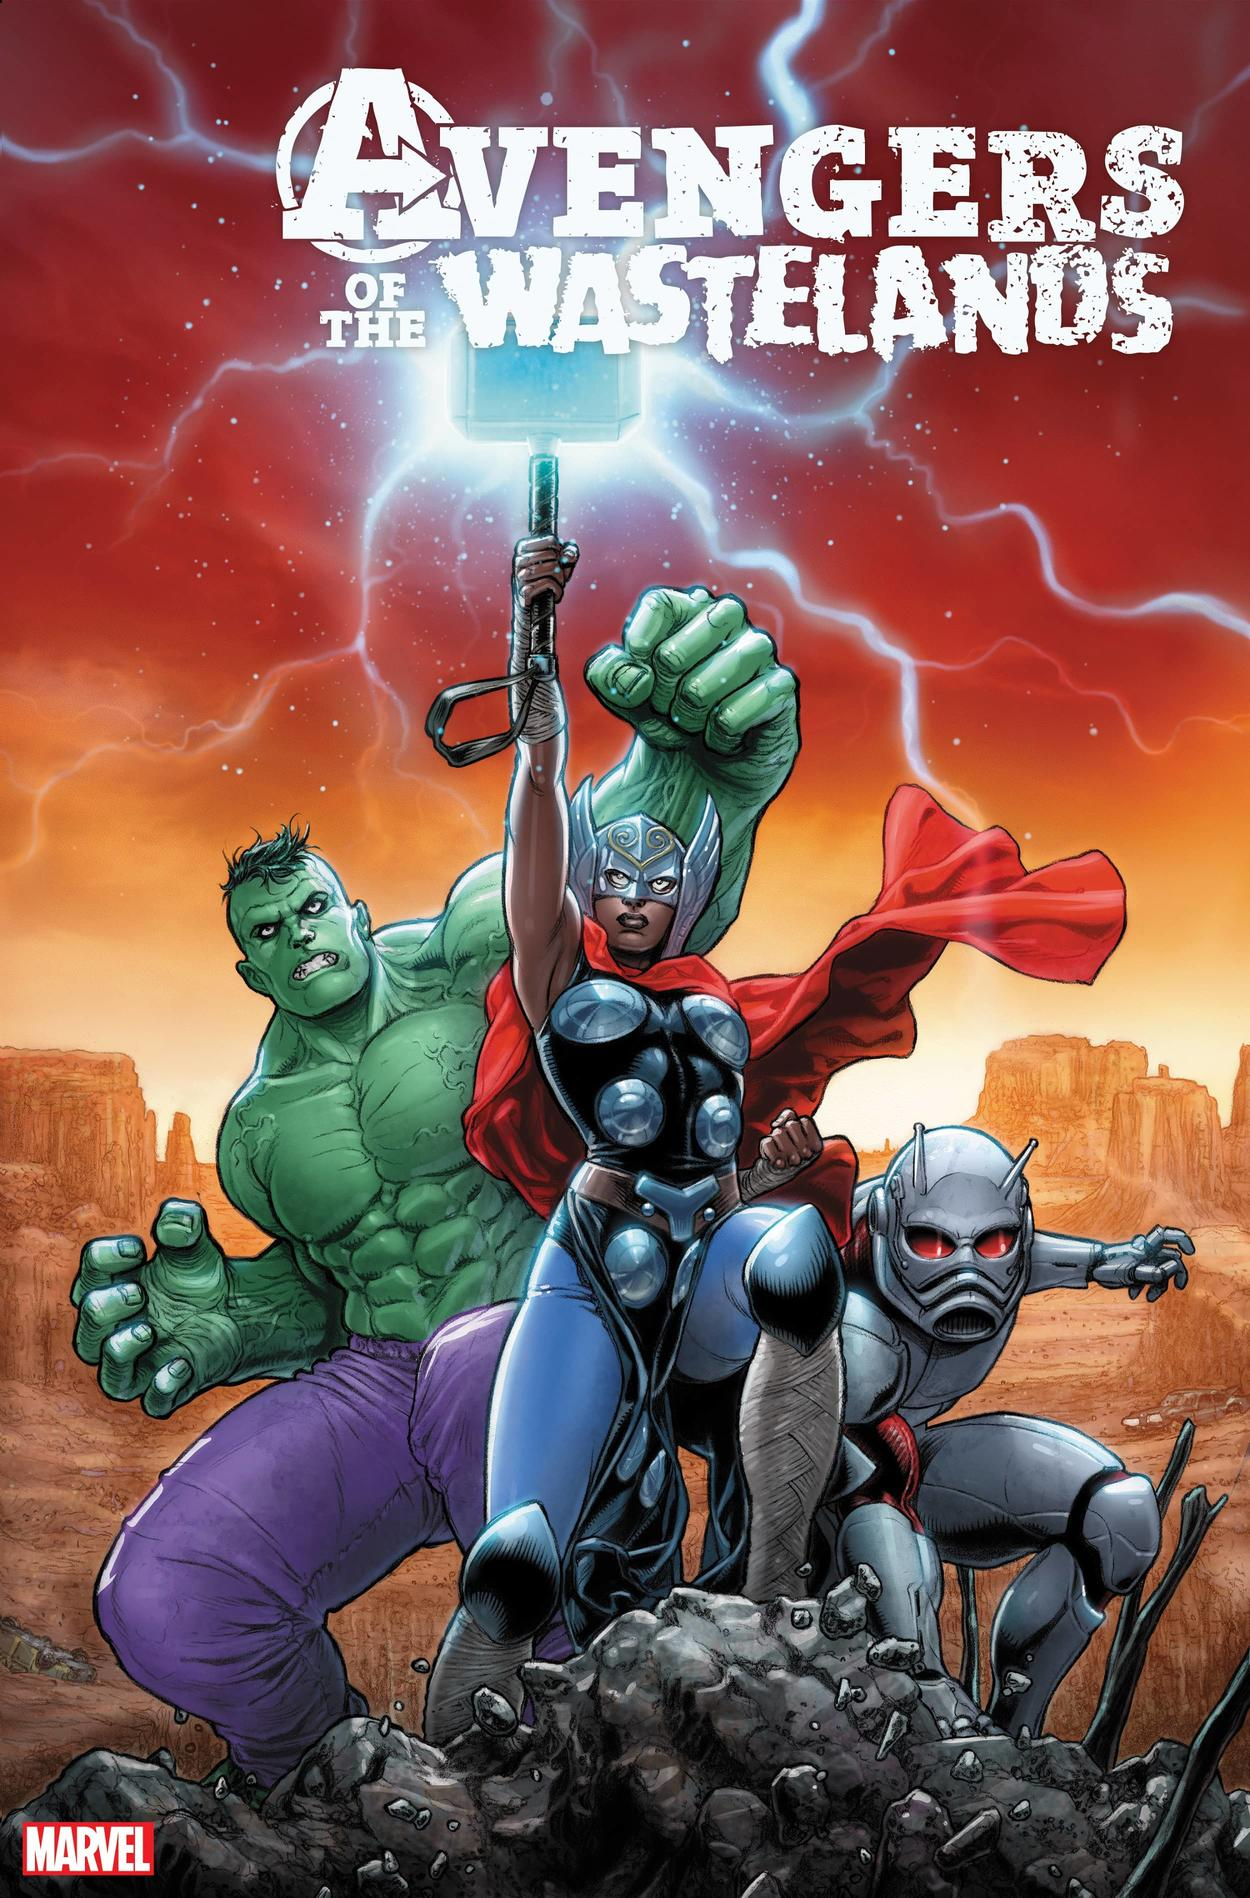 AVENGERS OF THE WASTELANDS #1 cover by Juan José Ryp